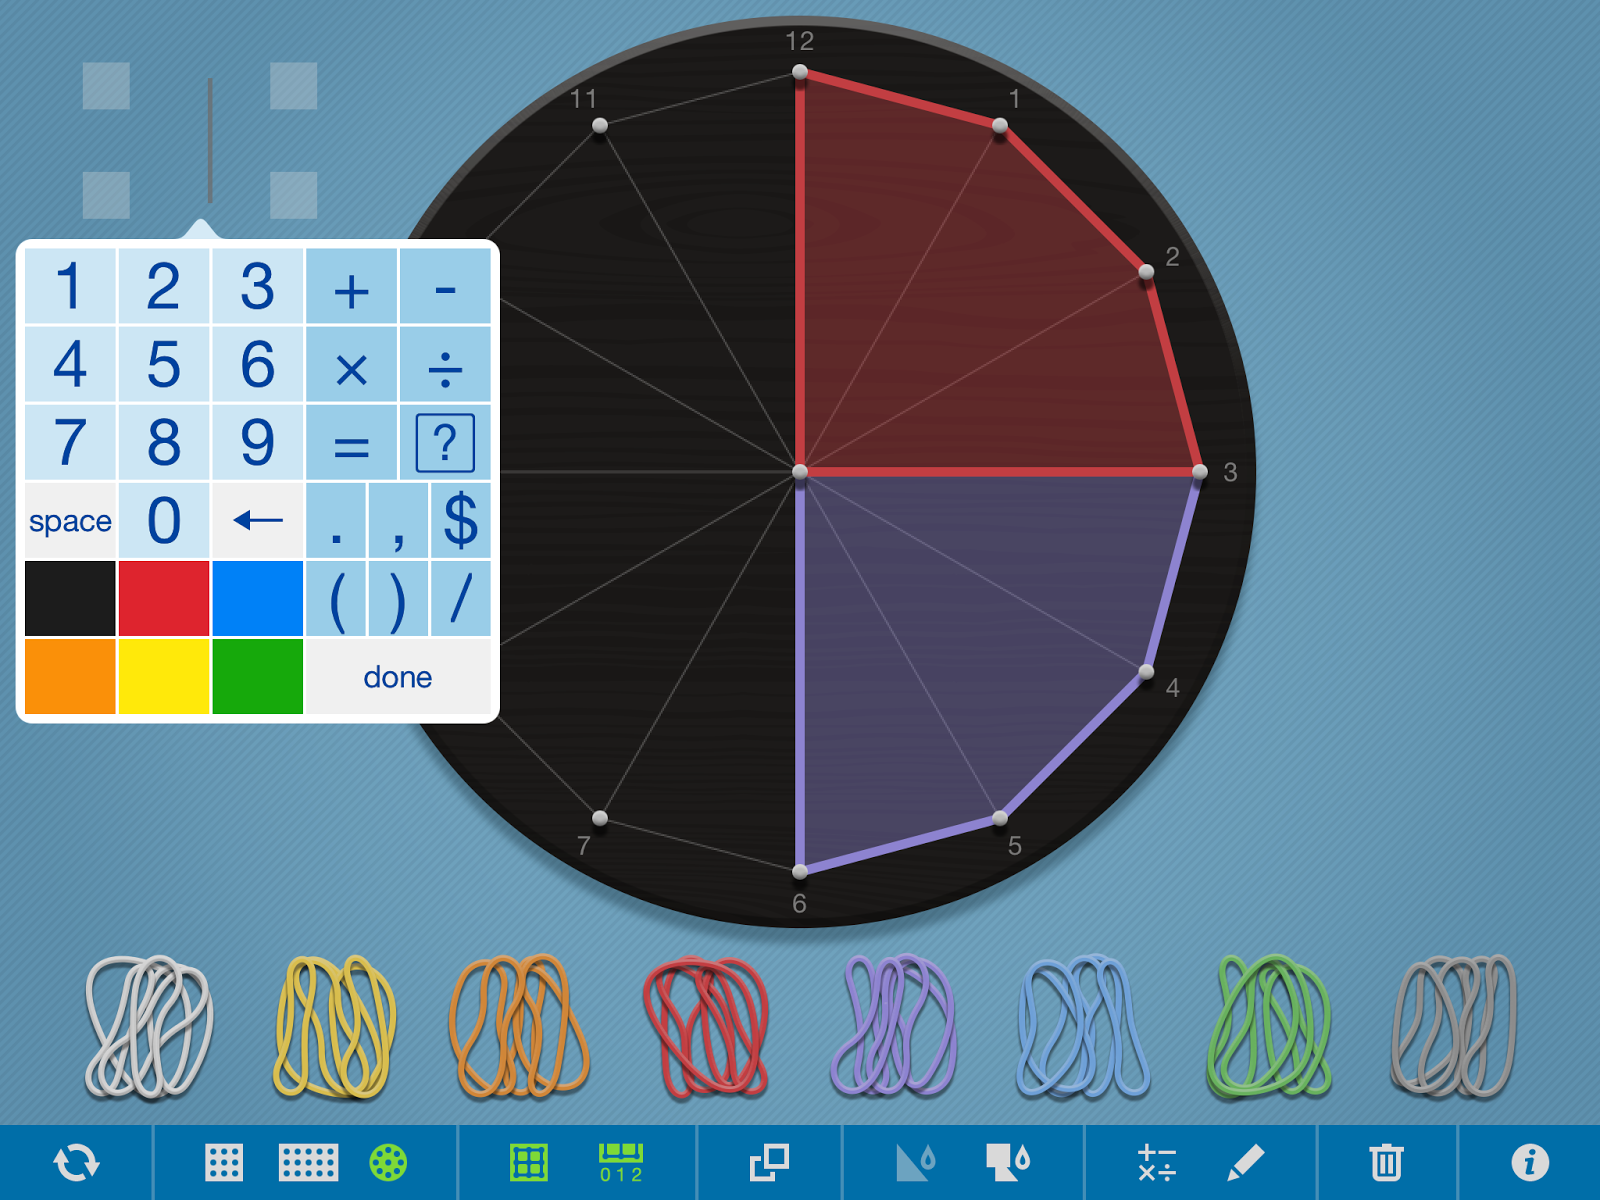 Suzanne's iAchieve Reflections: Digital Math Manipulatives and Models